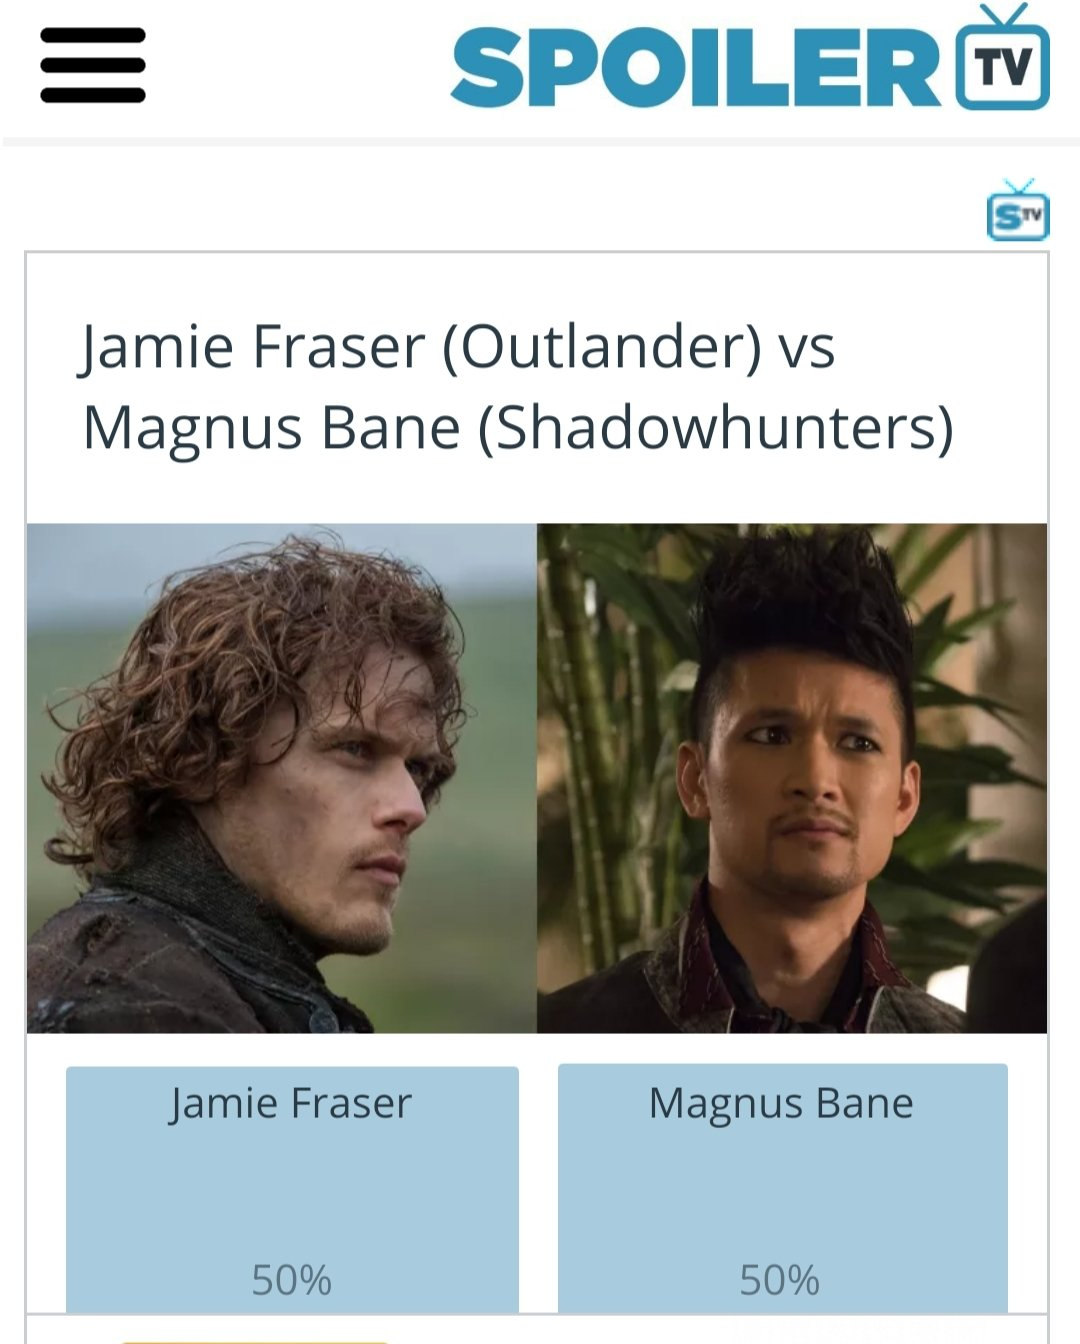 Vote for Magnus ���� #SaveShadowhunters #NotOurLastHunt https://t.co/6PDbjKIAj5 https://t.co/IERsqS1KLD